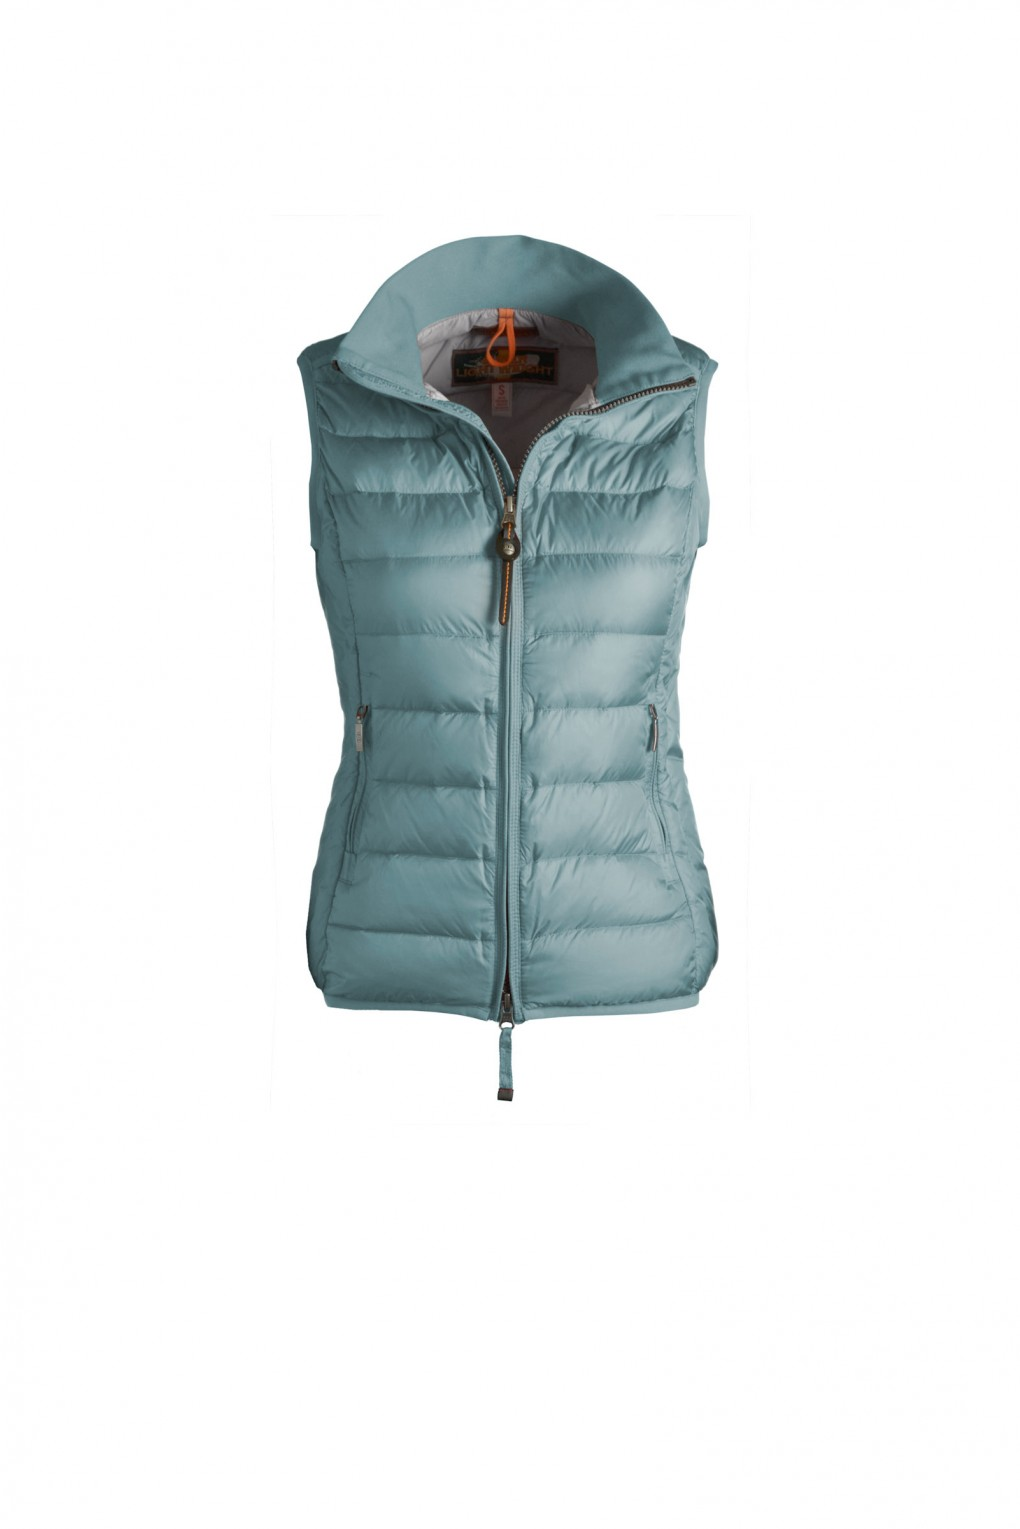 parajumpers DODIE6 woman outerwear Aqua